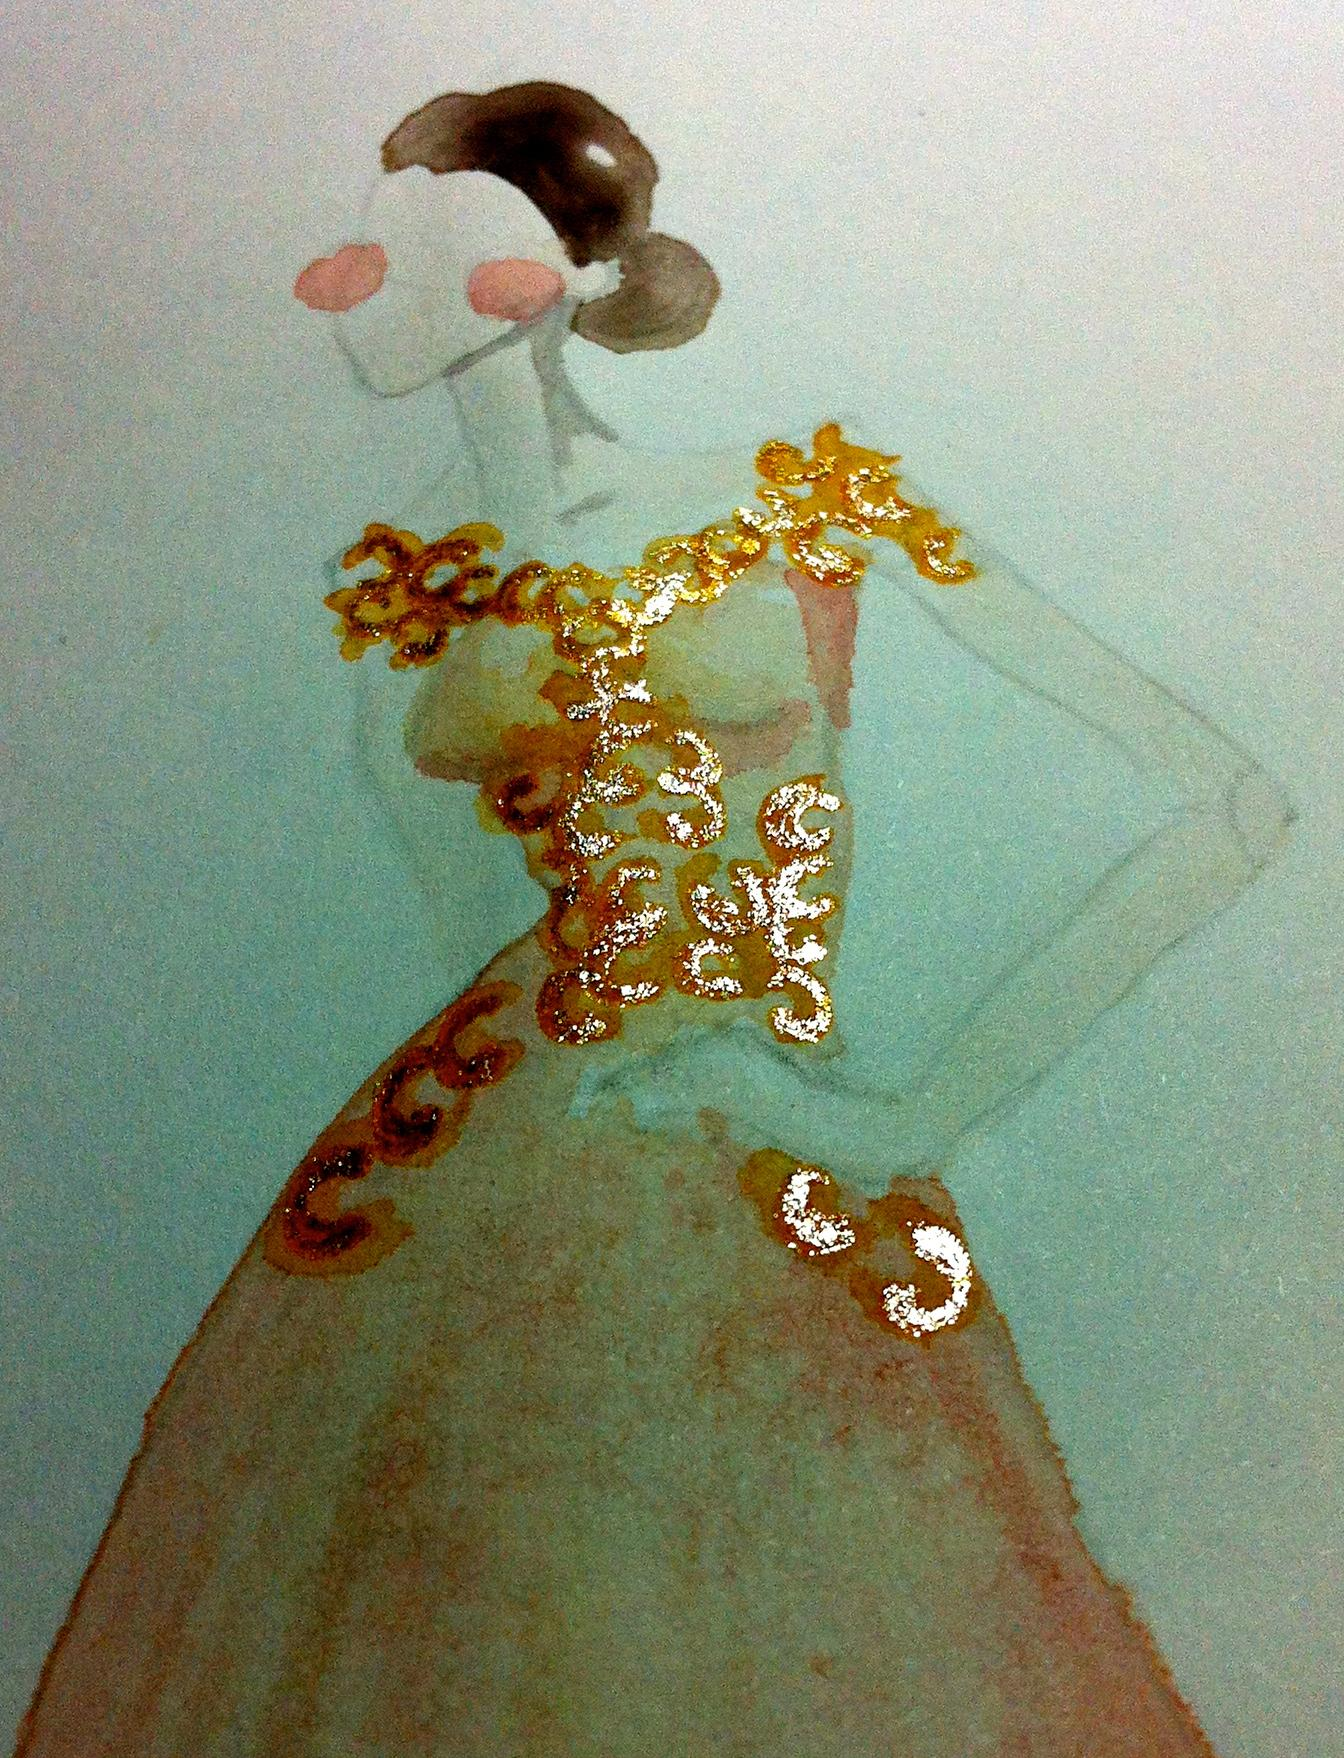 WATERCOLOR - Little Girl Dreams - image 12 - student project